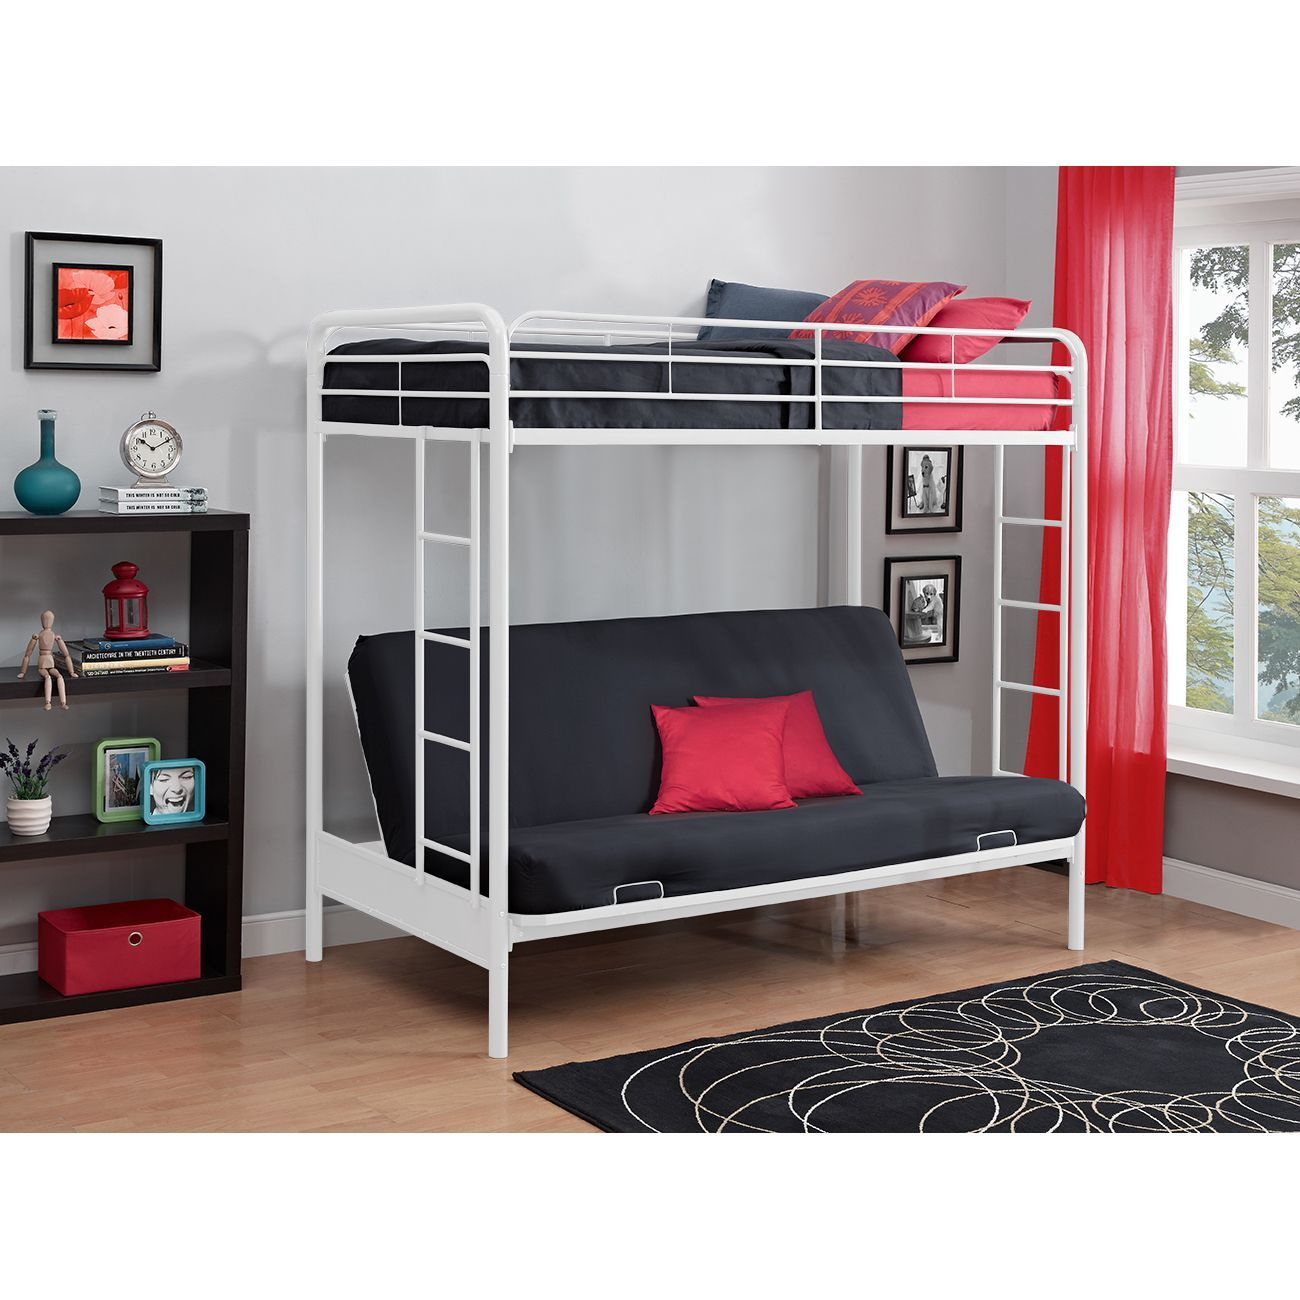 Dhp Twin Over Futon White Metal Bunk Bed With Images White Bunk Beds Bunk Beds With Stairs Metal Bunk Beds